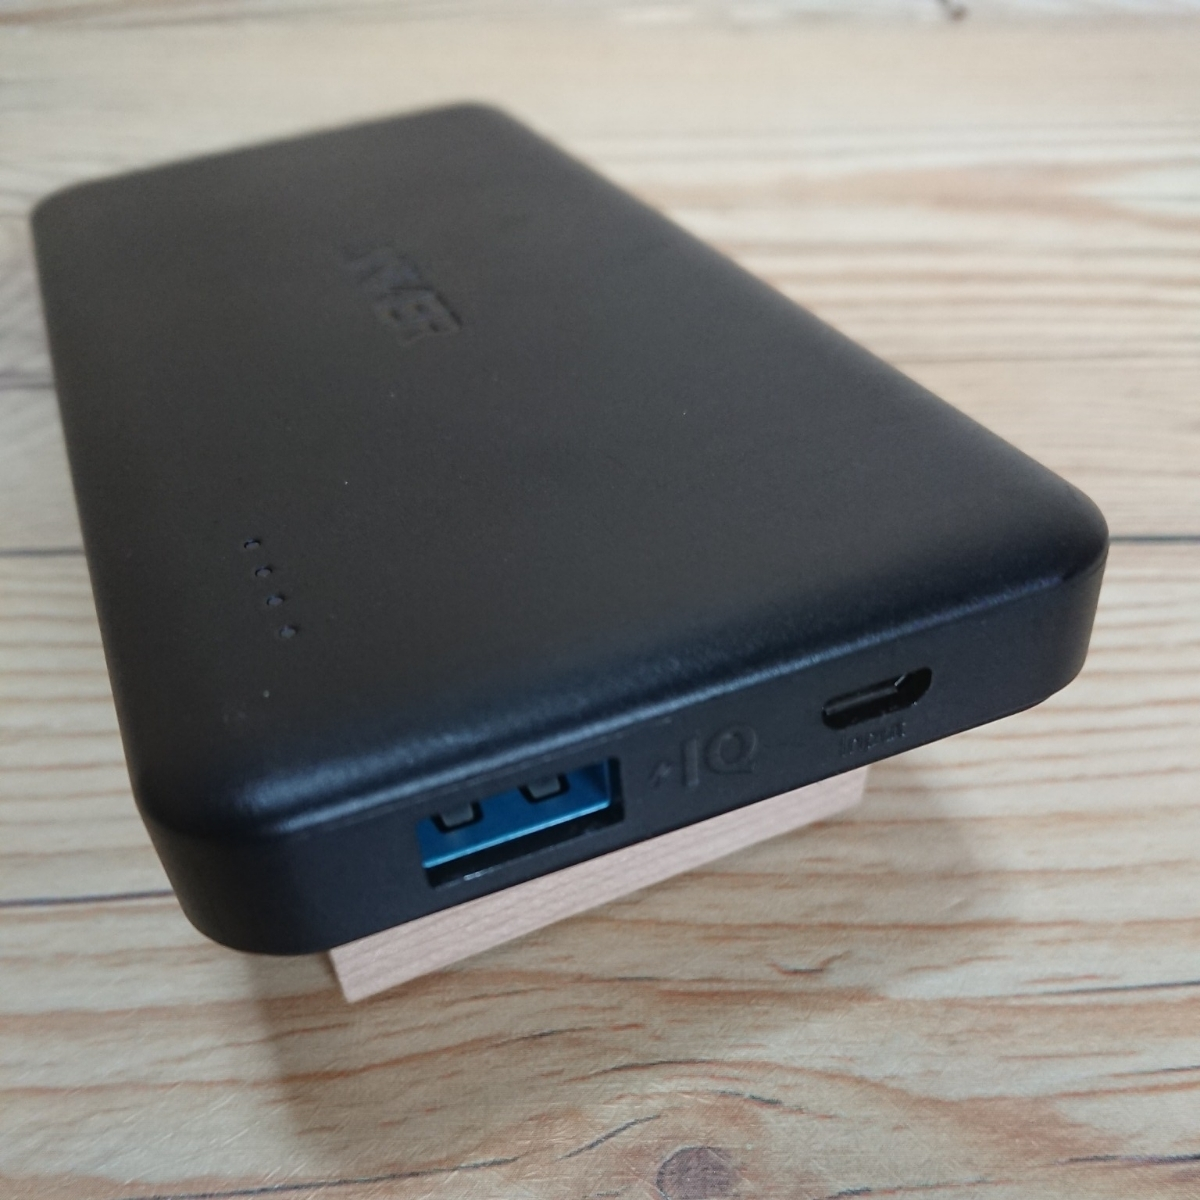 【ANKER PowerCore Ⅱ 10000】A1261 モバイルバッテリー アンカー_画像3